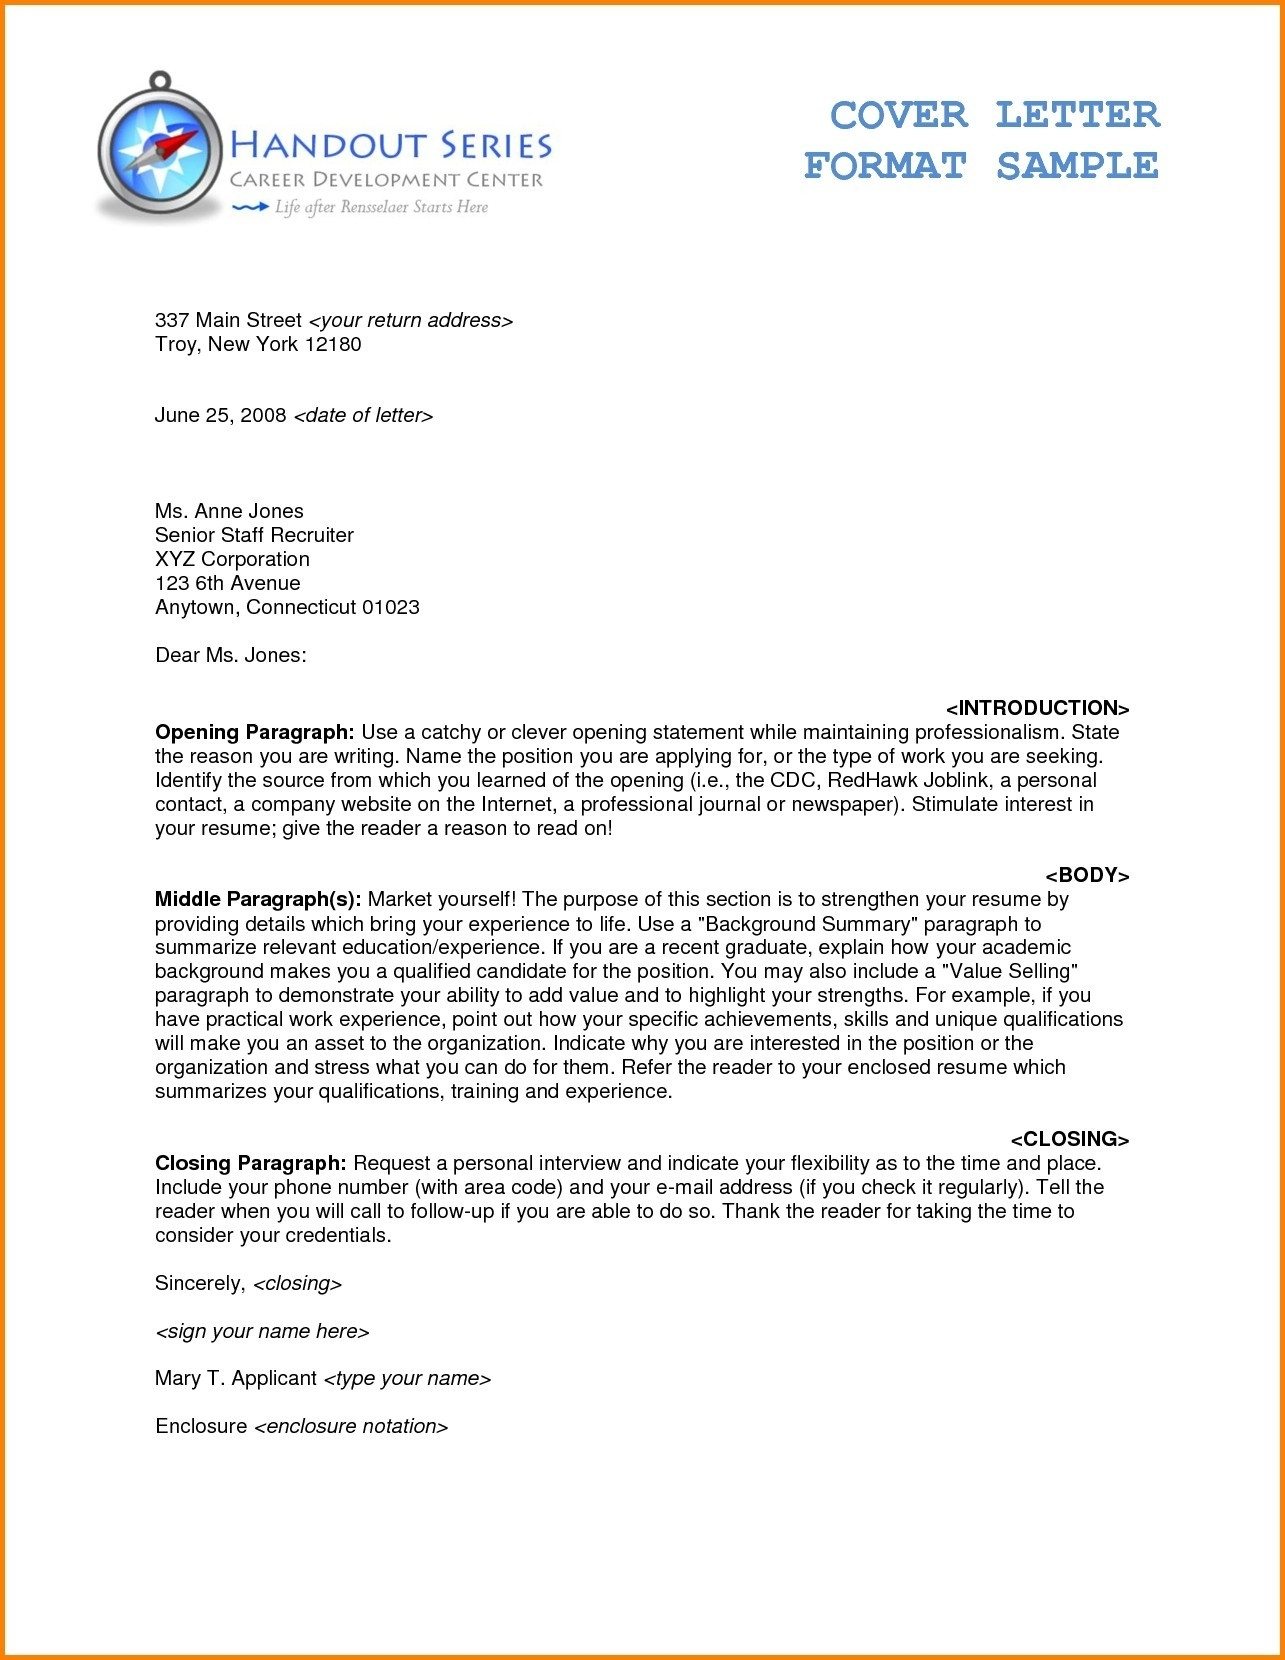 Business letter format enclosure examples and forms quotation letter format in word fresh business letter format regarding business letter format enclosure 20098 spiritdancerdesigns Image collections